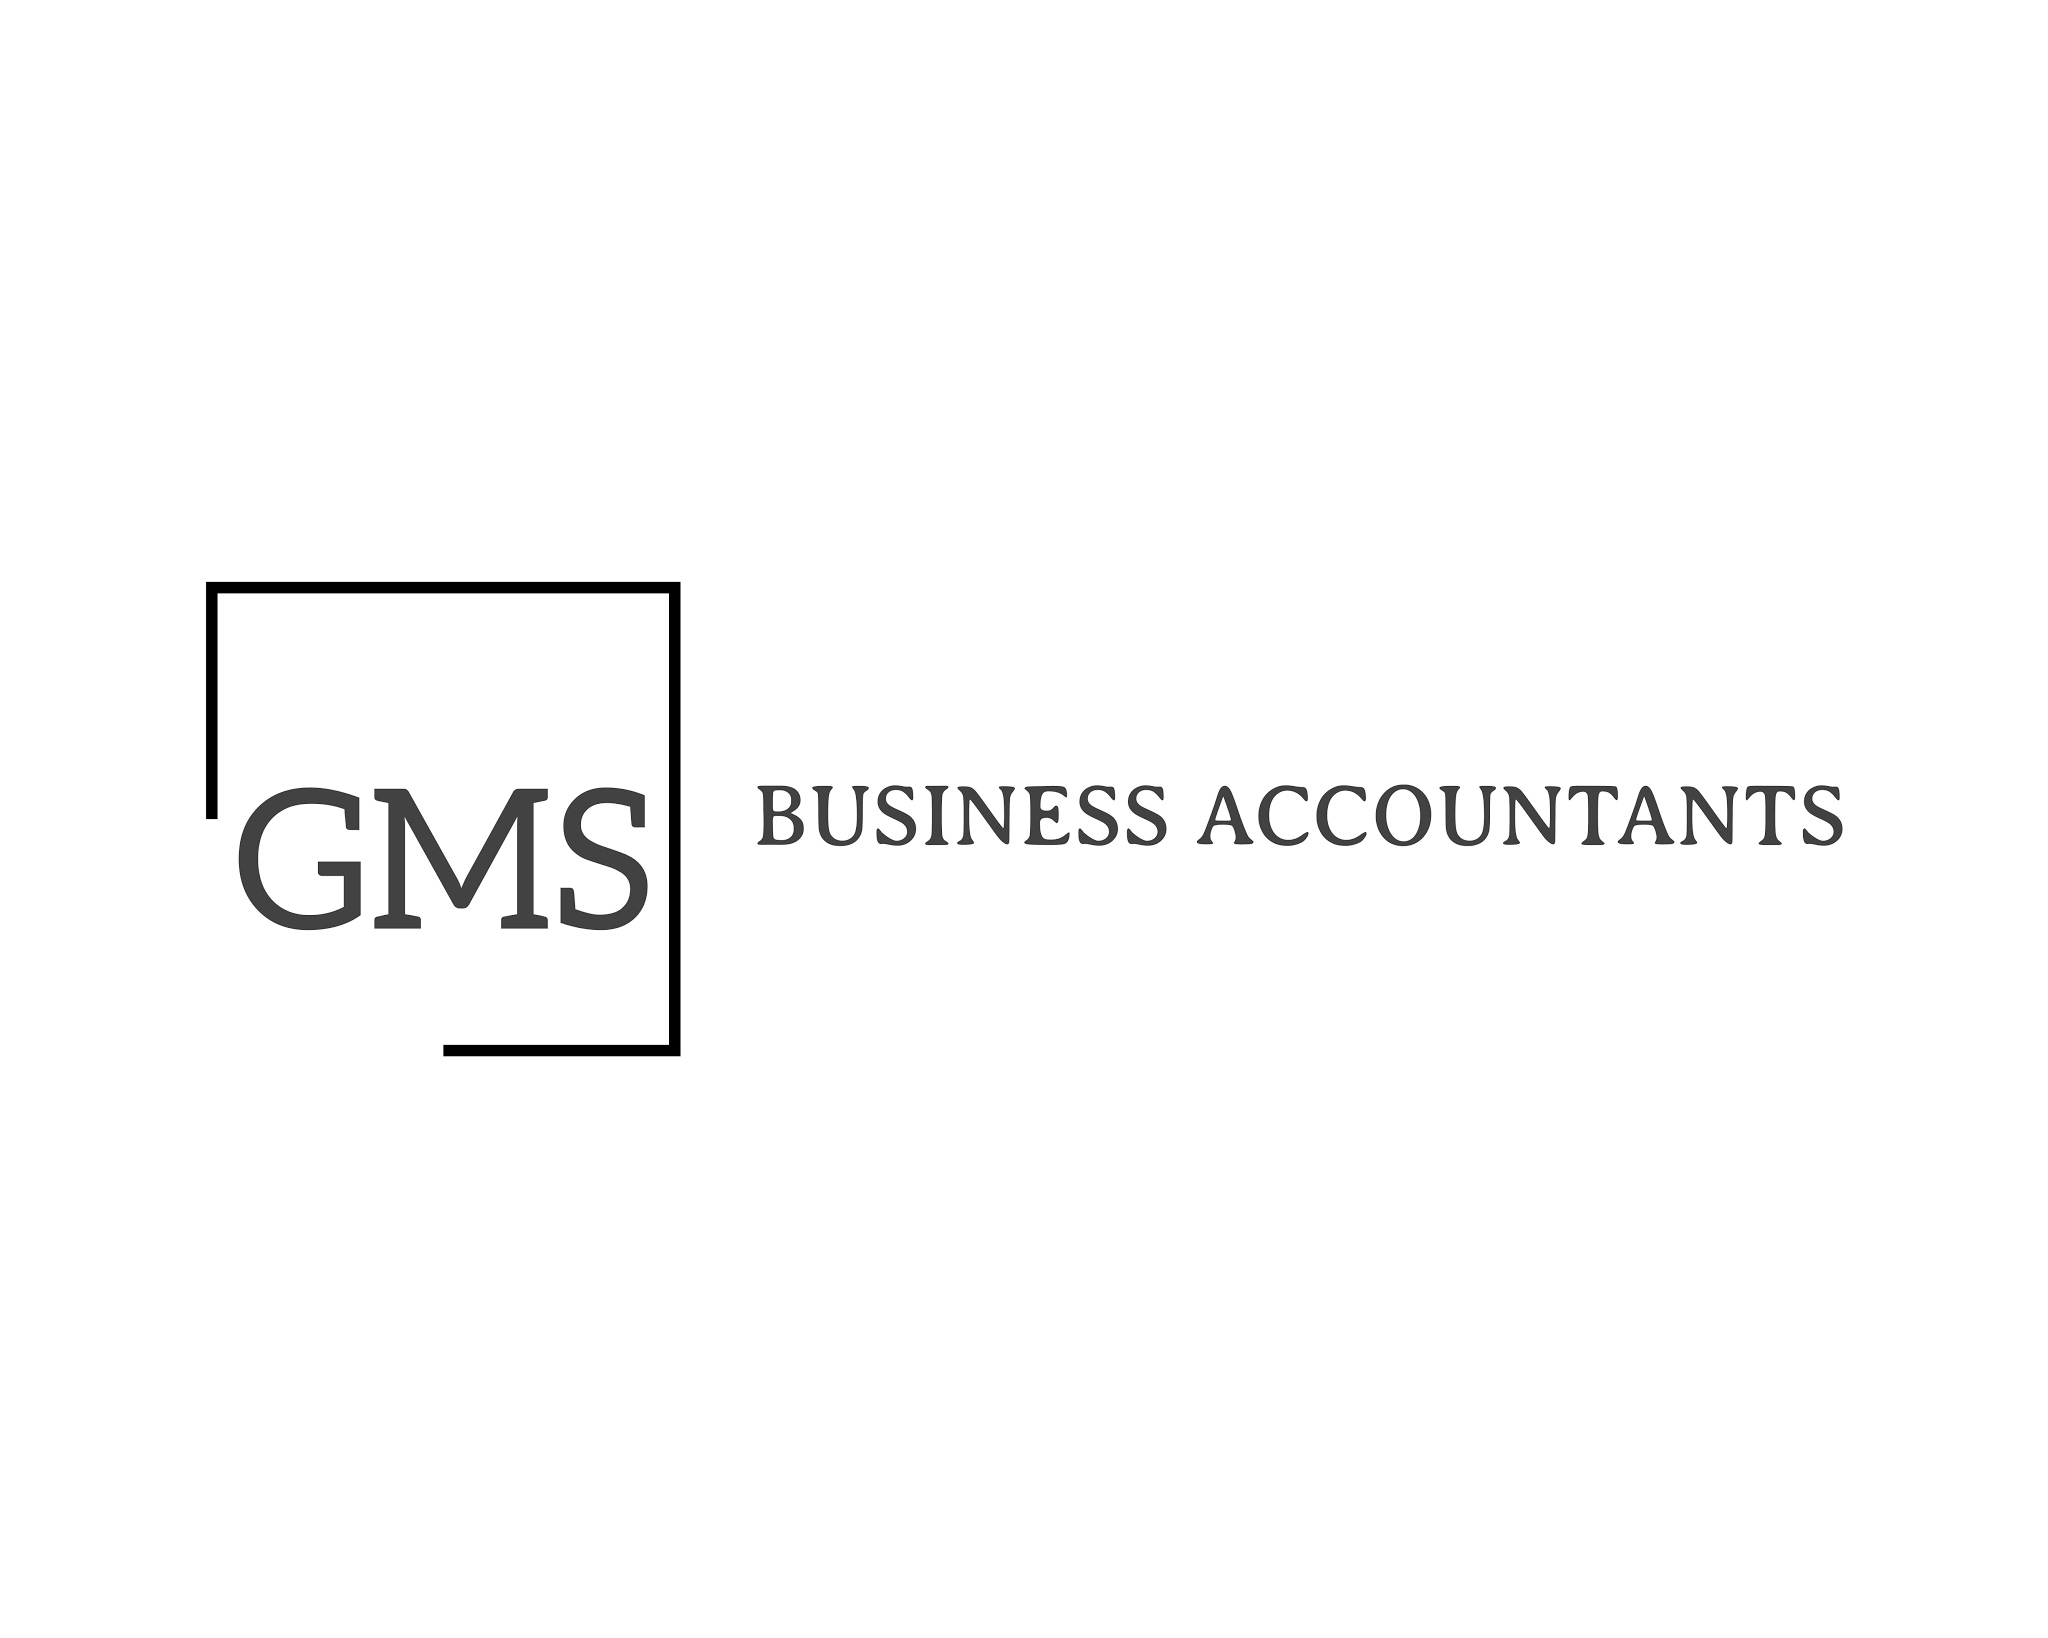 GMS Business Accountants